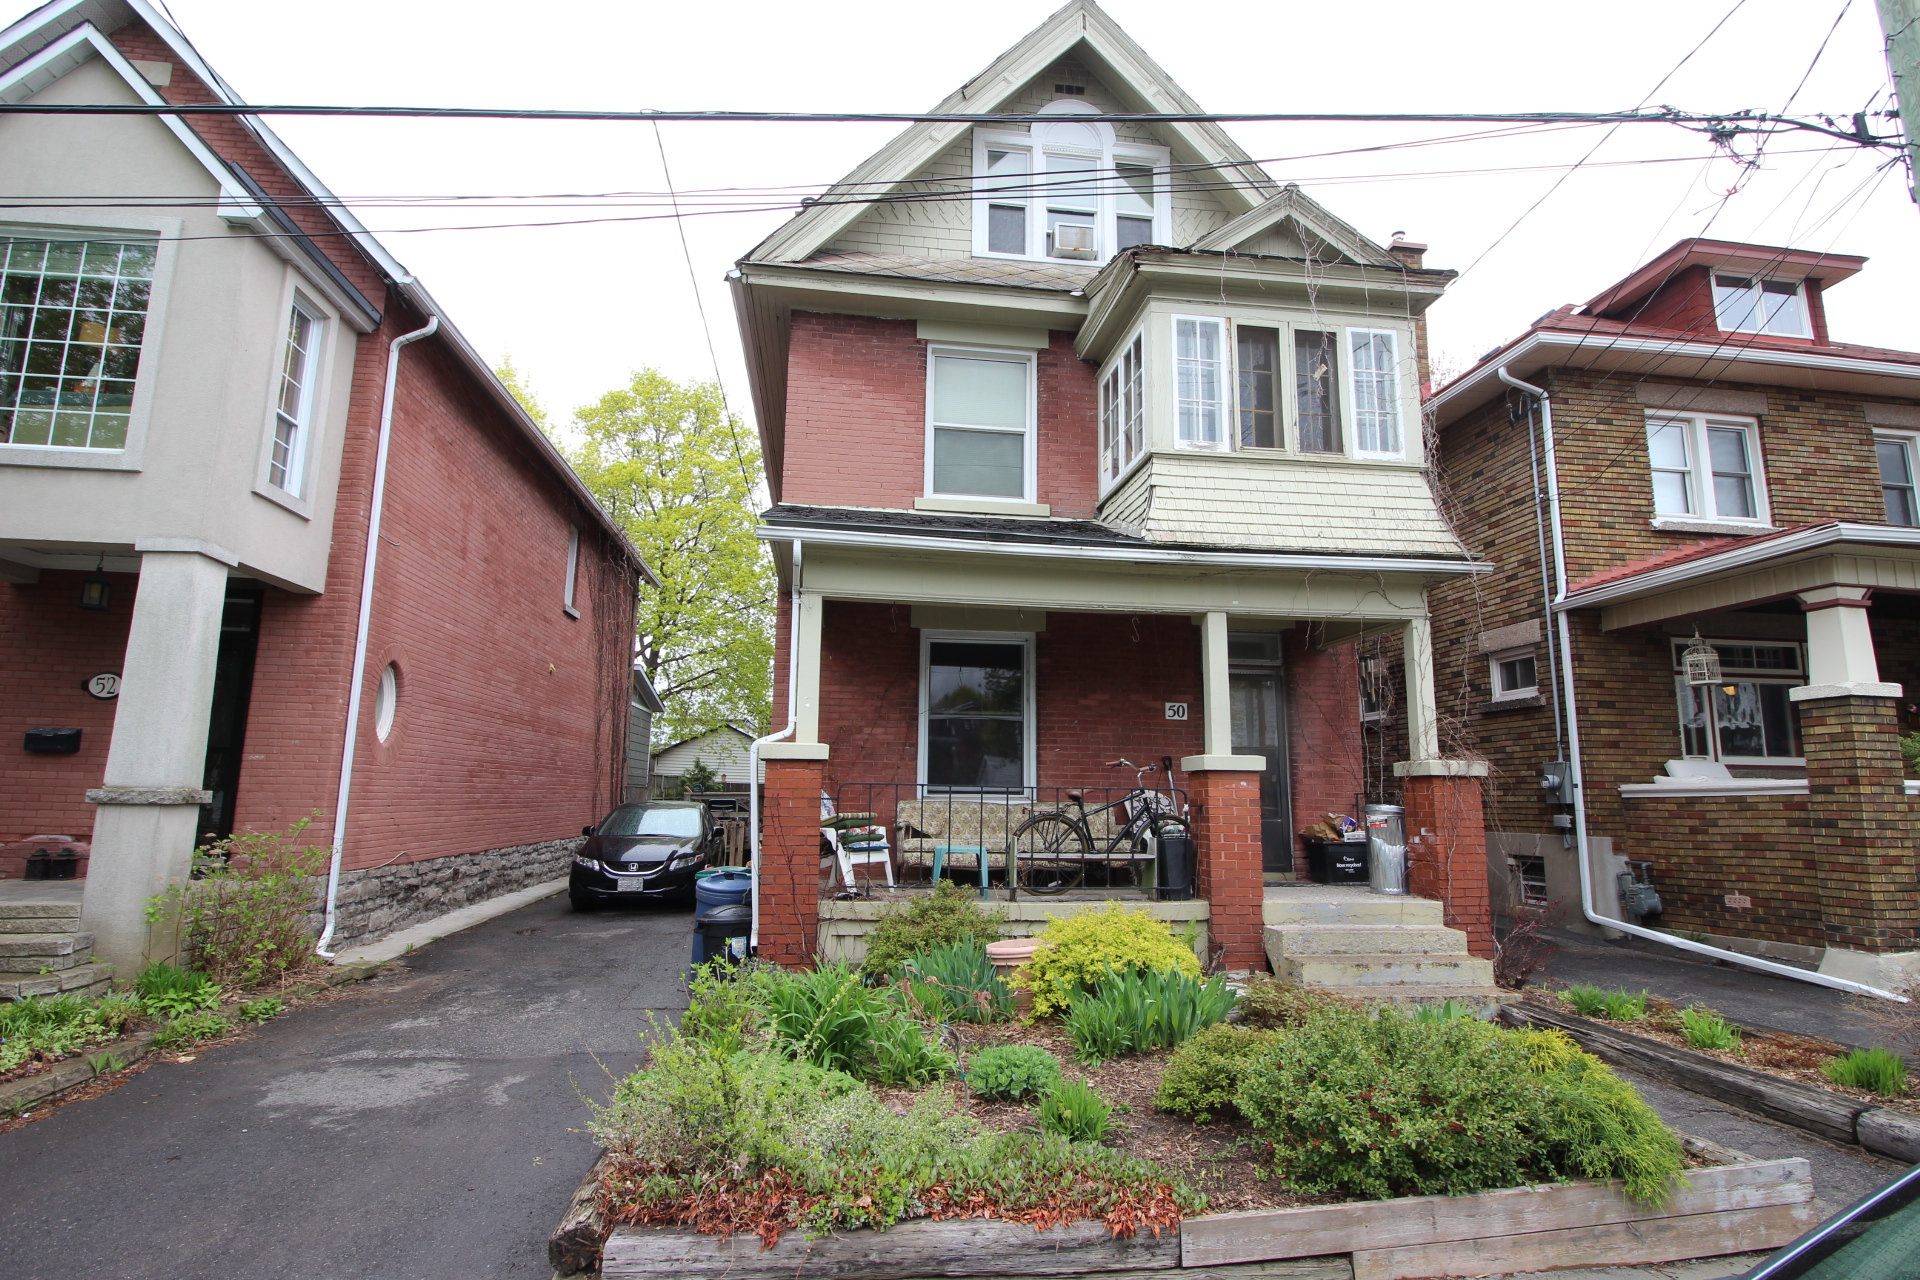 50 Melrose Ave - Fantastic Location near Civic Hospital. Live-in or Invest!